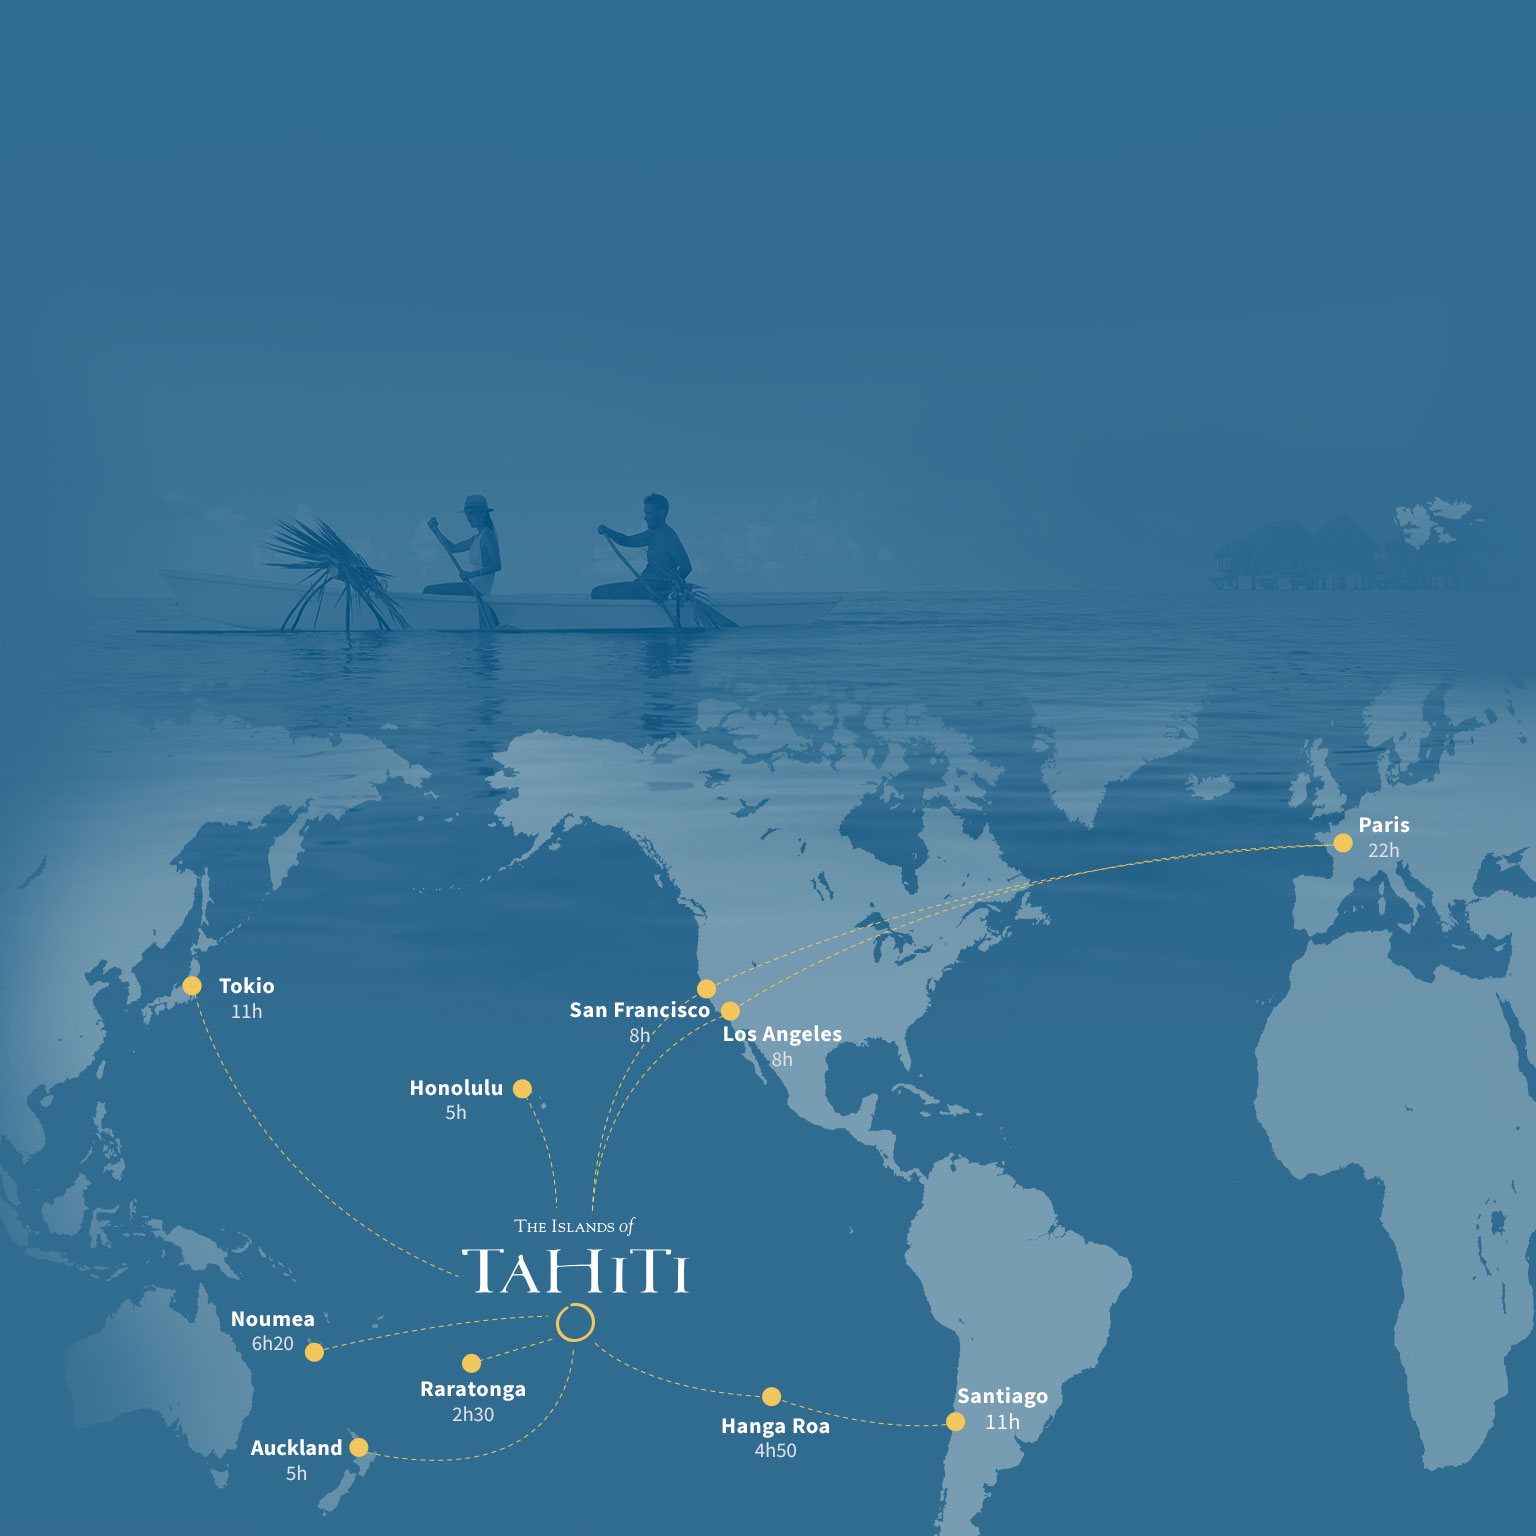 tahiti-homepage-map-t_german | Tahiti Tourisme on map of hawaii, map of south pacific, map of spain, map of fiji, map of thailand, map of french polynesia, map of seychelles, map of costa rica, map of switzerland, map of bahamas, map of bali, map of brazil, map of moorea, map of carribean, map of pacific ocean, map of austrailia, map of kwajalein, map of bora bora, map of malaysia, map of new zealand,